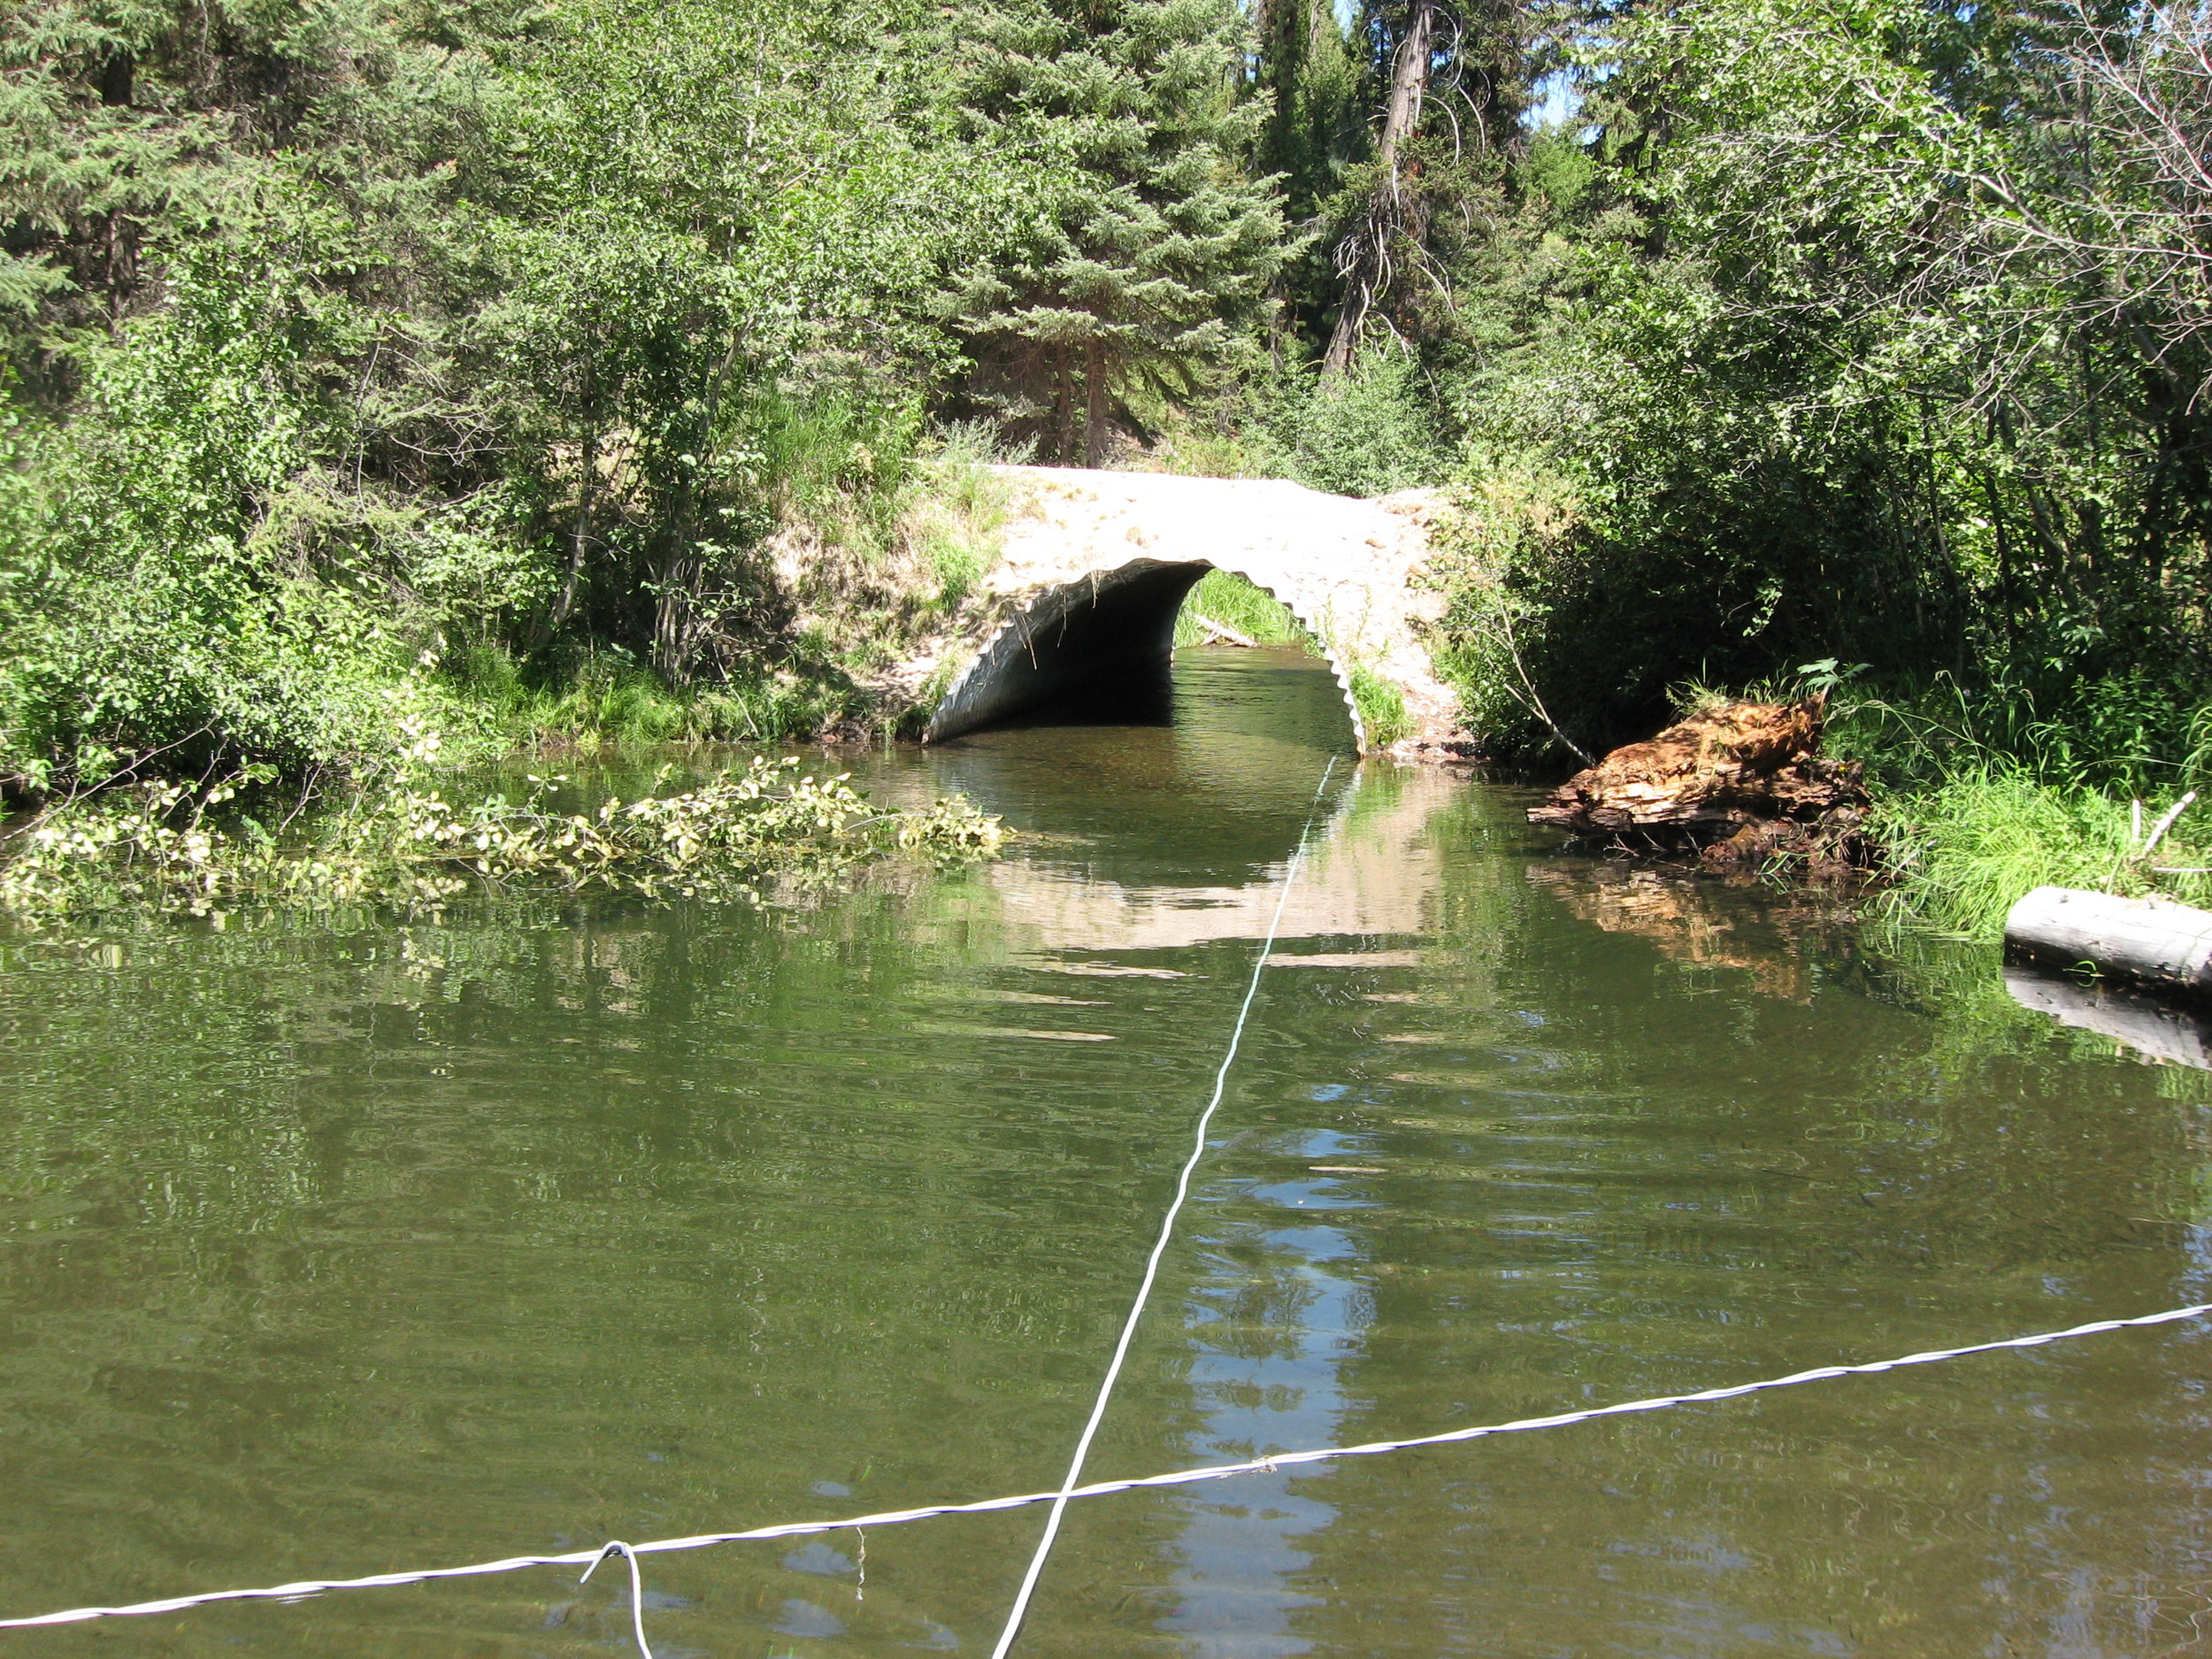 Old culvert, prior to replacement.